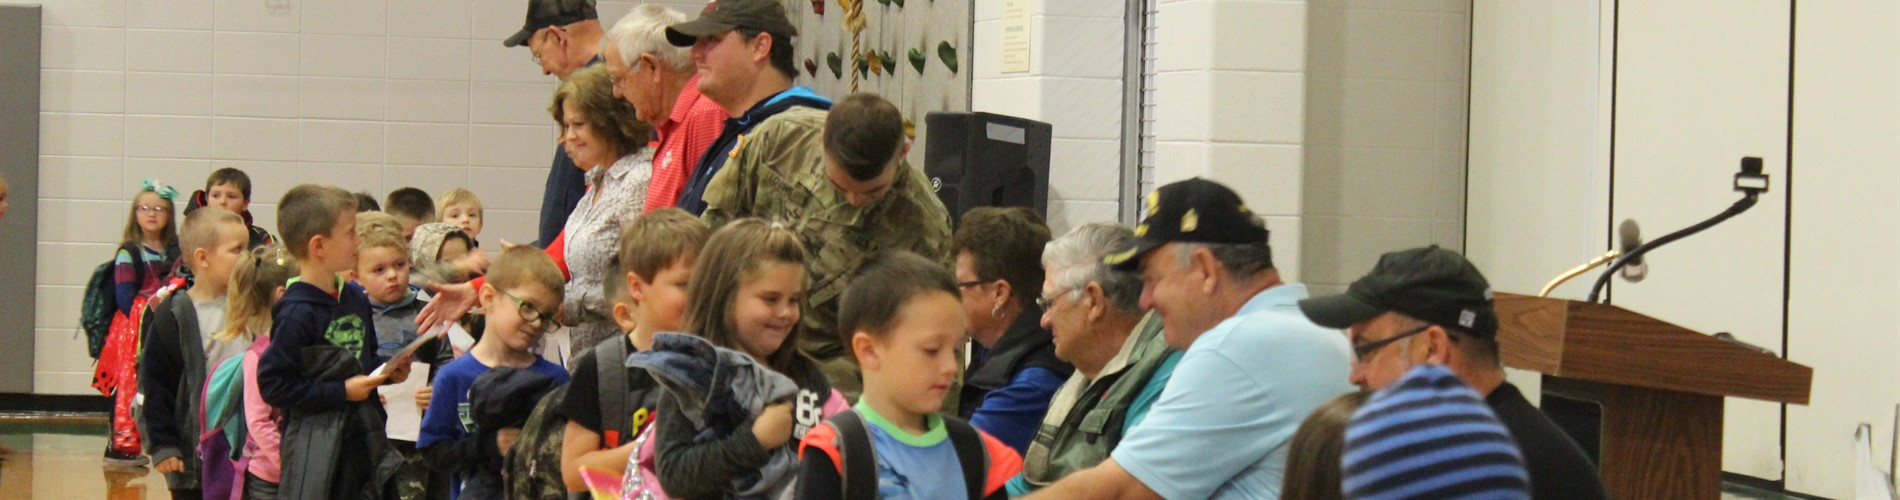 JPE kids with veterans.